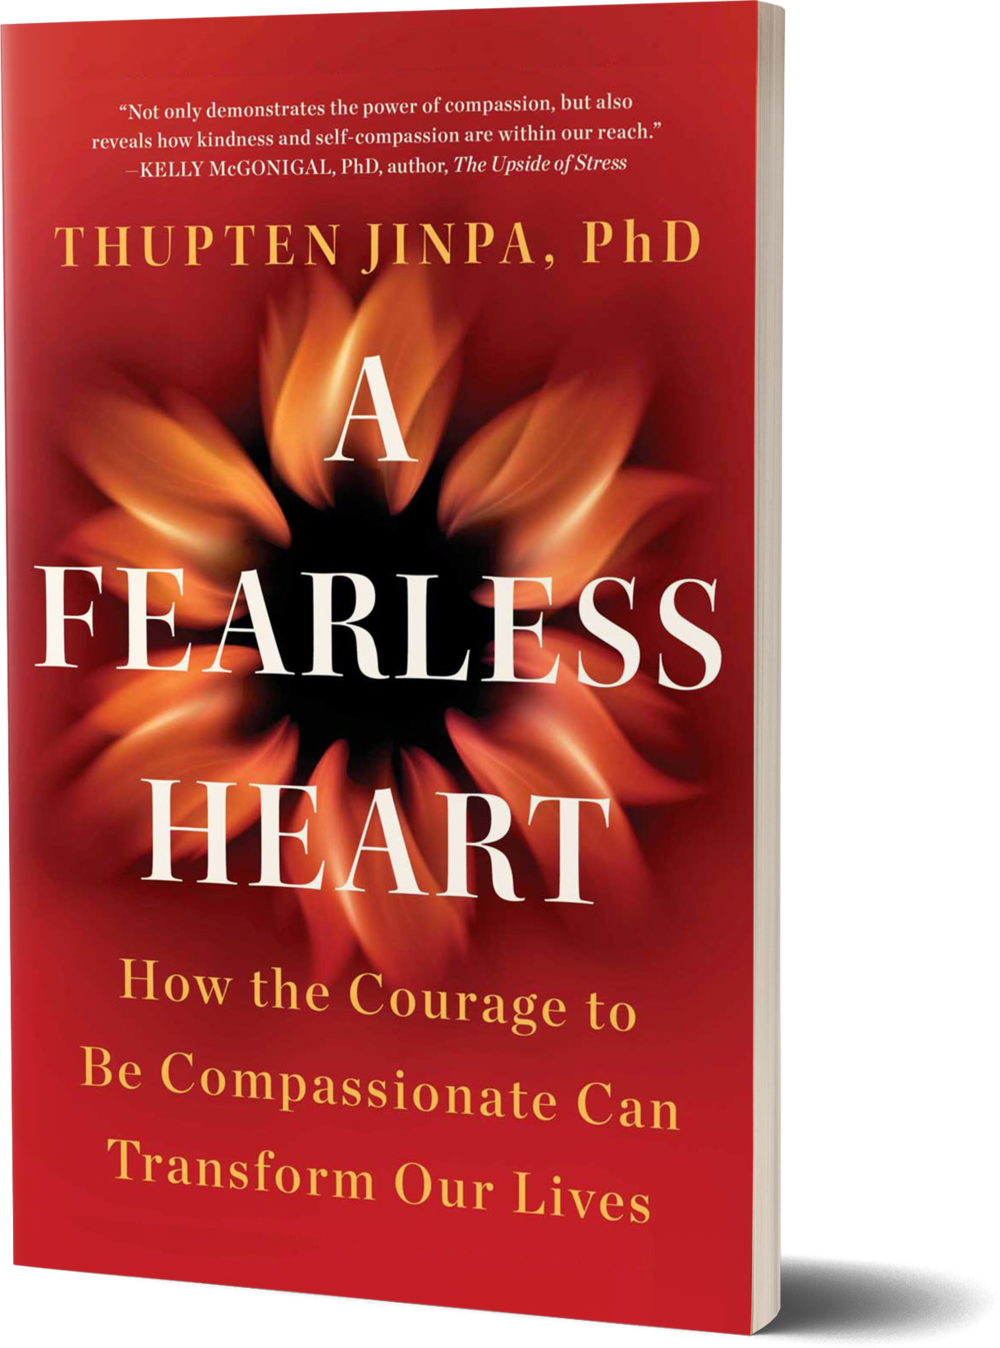 A Fearless Heart- How the Courage to Be Compassionate Can Transform Our Lives by Thupten Jinpa, Ph.D.png